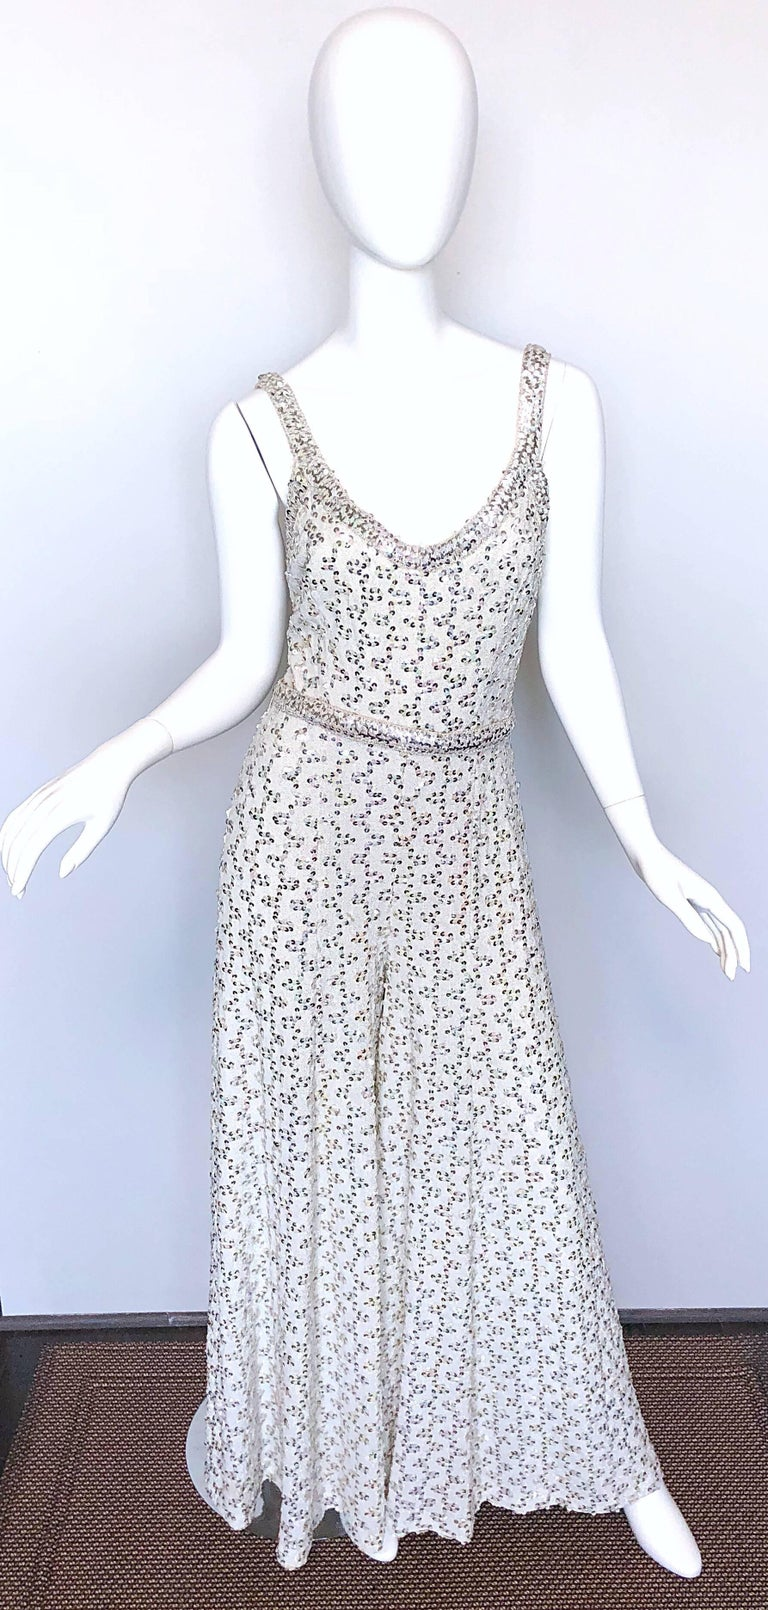 Sensational early 1970s LILLI DIAMOND silver sequined lurex wide leg disco jumpsuit! Features thousands of hand-sewn silver sequins throughout. Soft silver metallic lurex fabric. Fully lined. Fitted bodice, with original detachable belt and wide